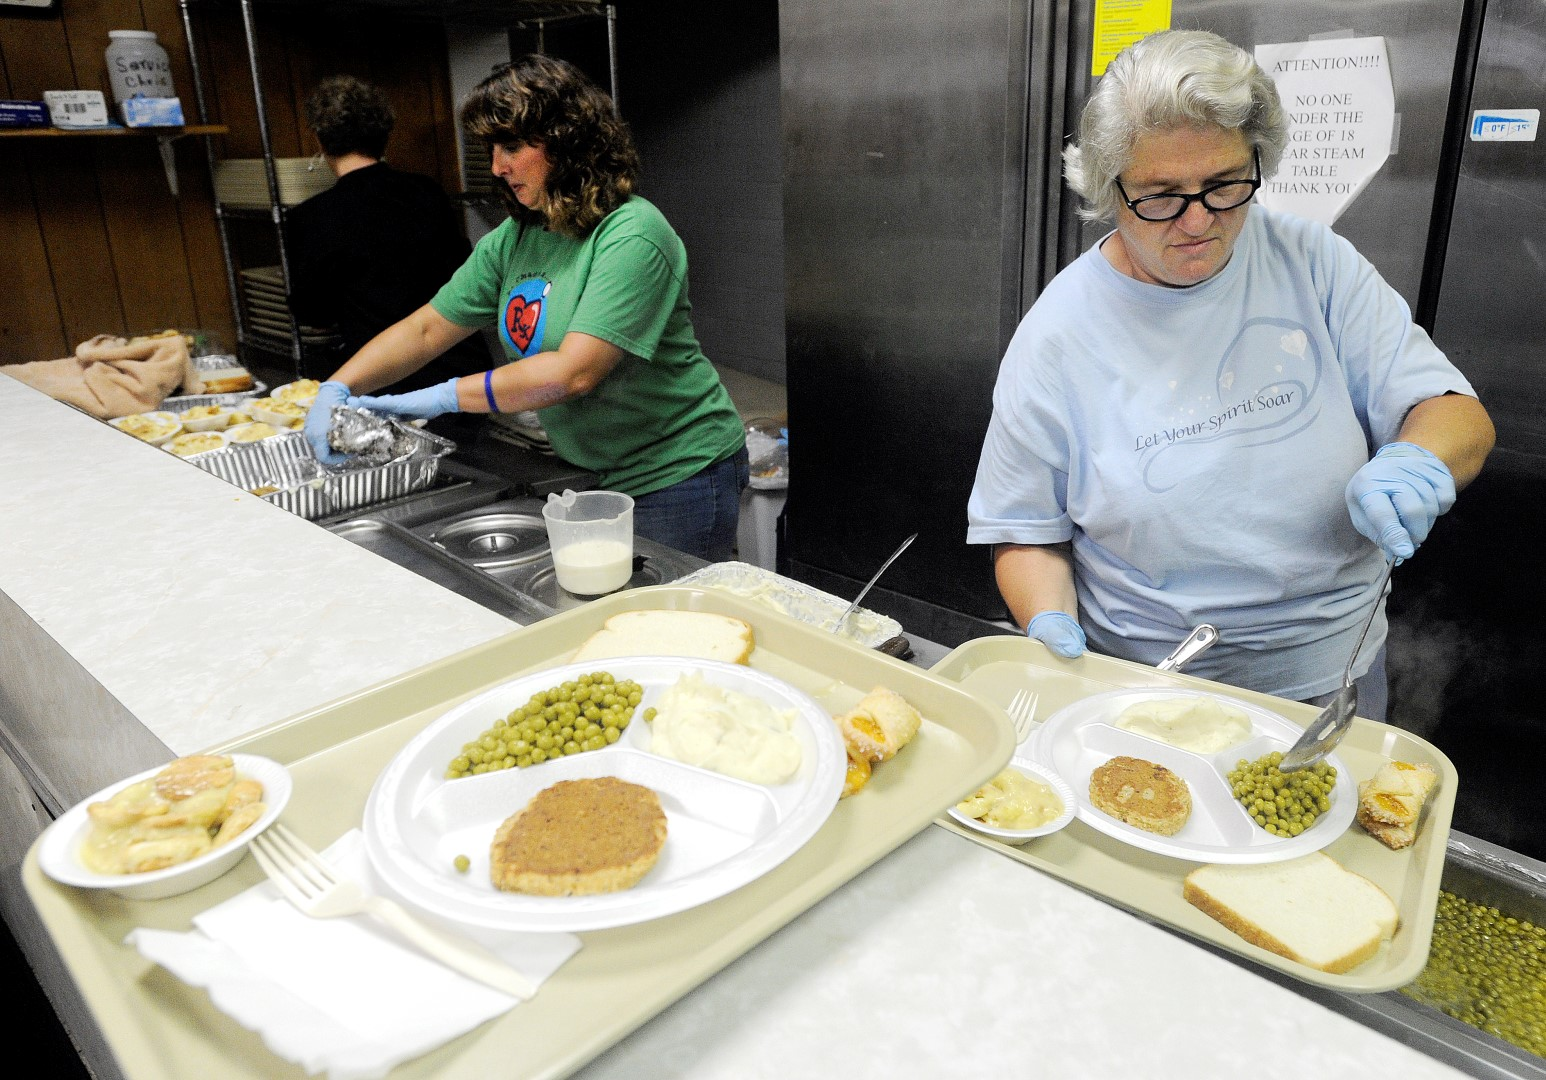 Gadsden Soup Kitchen